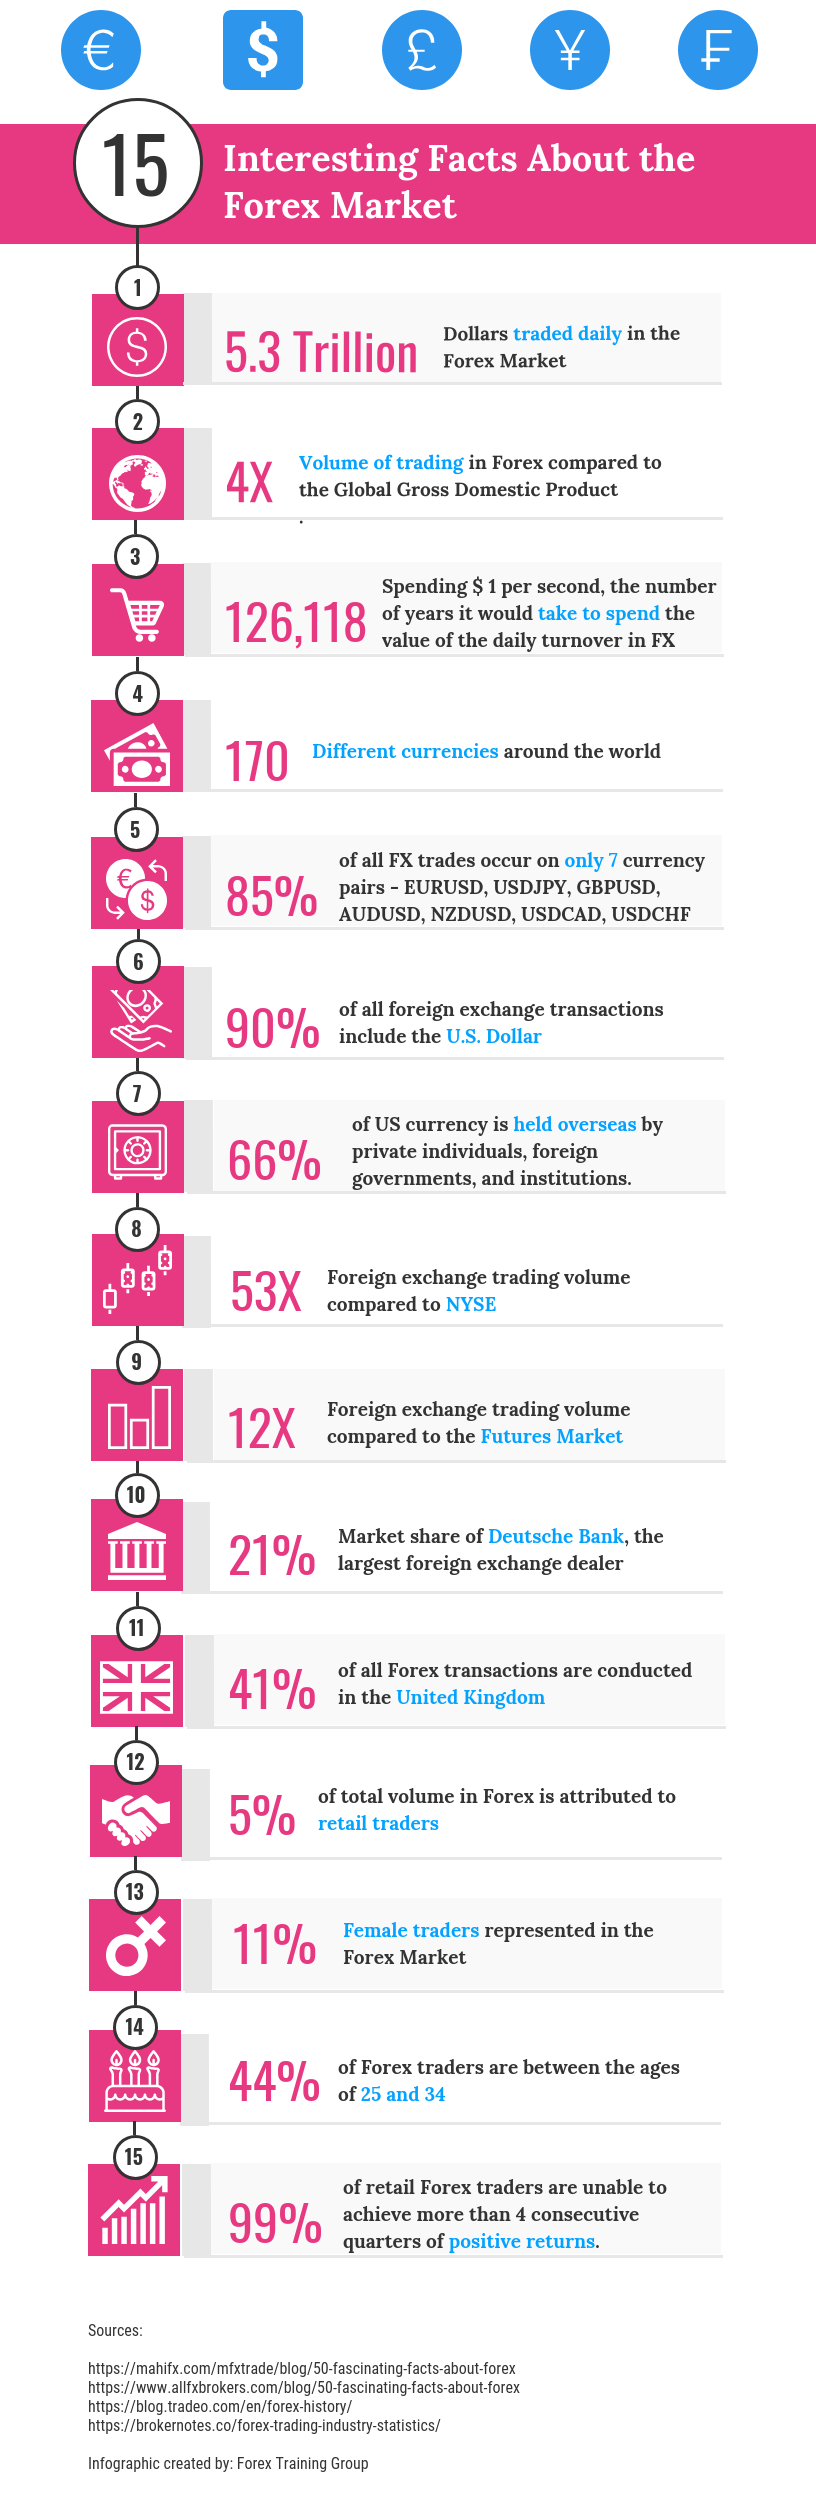 15-Interesting-Facts-About-the-Forex-Market-Infographic-plaza